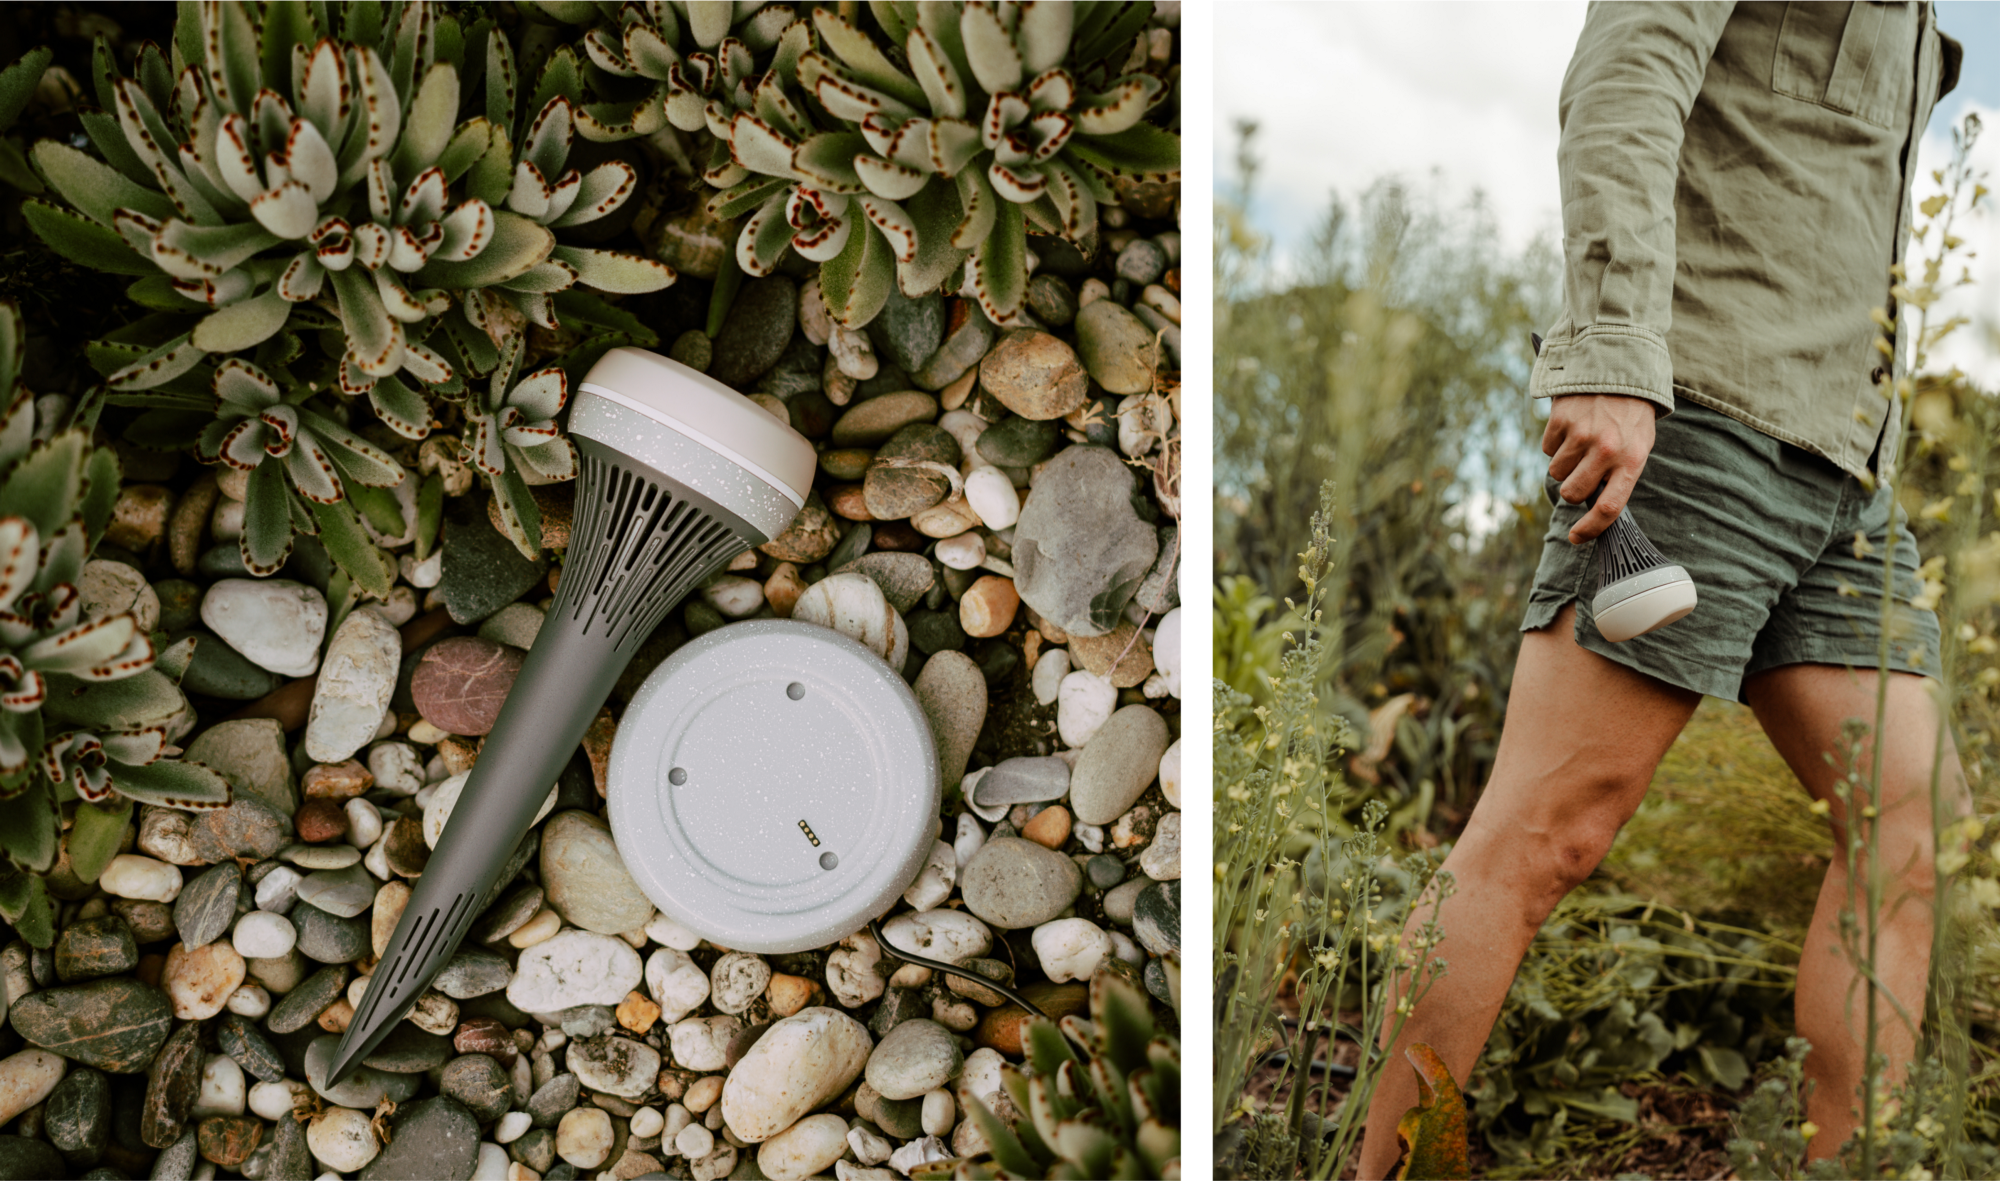 Left image: The monty monitor resting on a bed of succulents and pebbles. Right image: A khaki-clad man walking through a field holding the monitor in his hand.